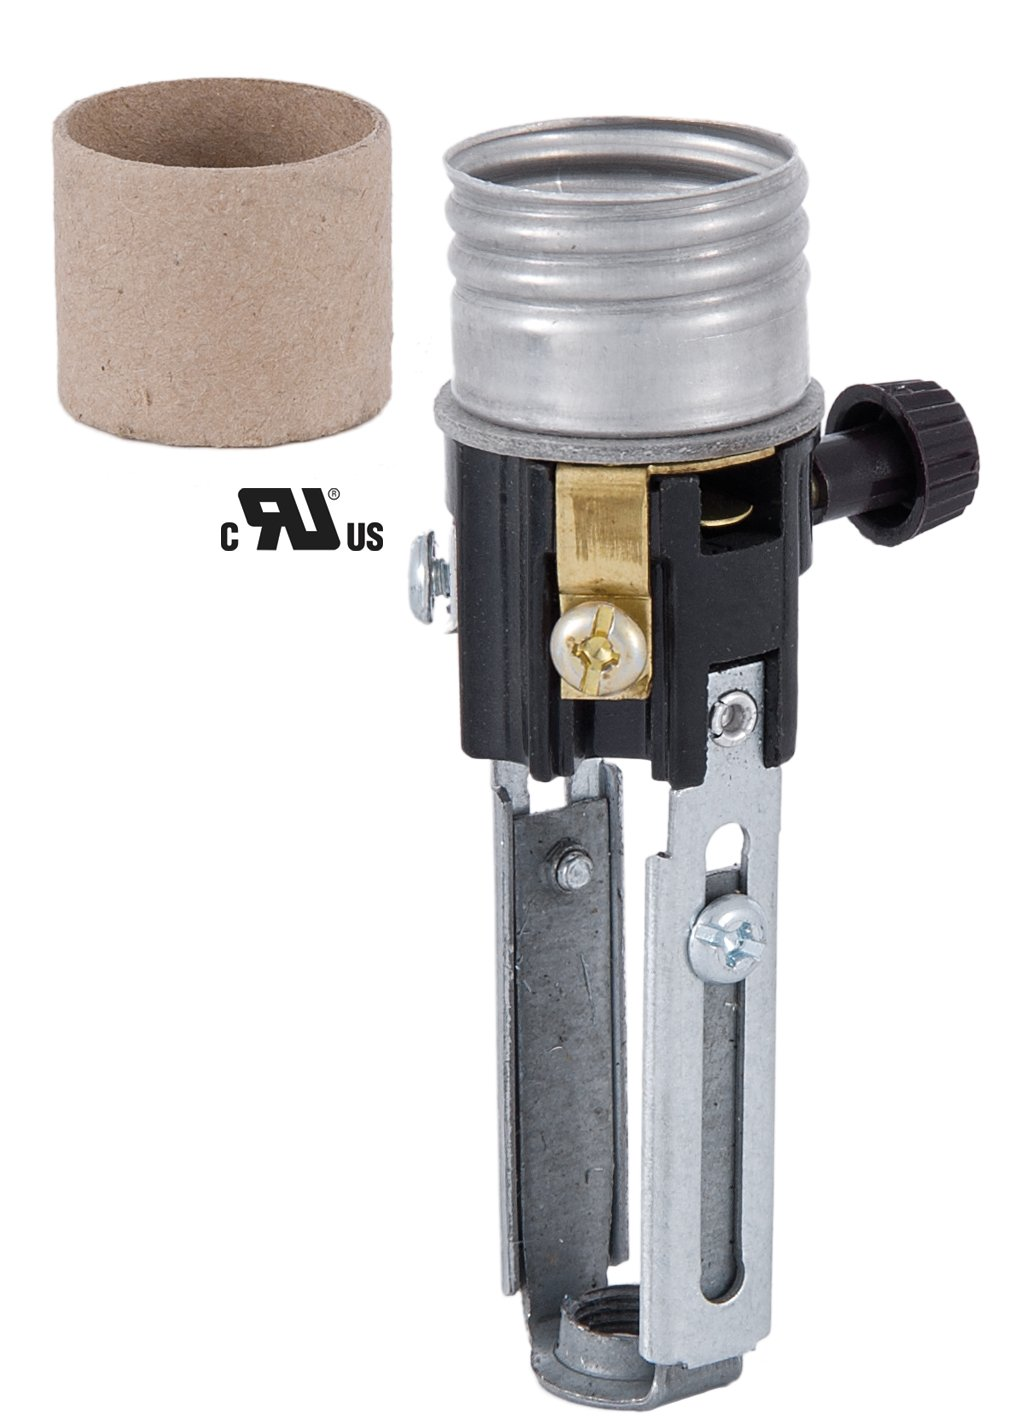 B&P Lamp Med. Base, Adjustable Height (4'' to 5 1/2''), On/Off Turn-knob Candle Socket